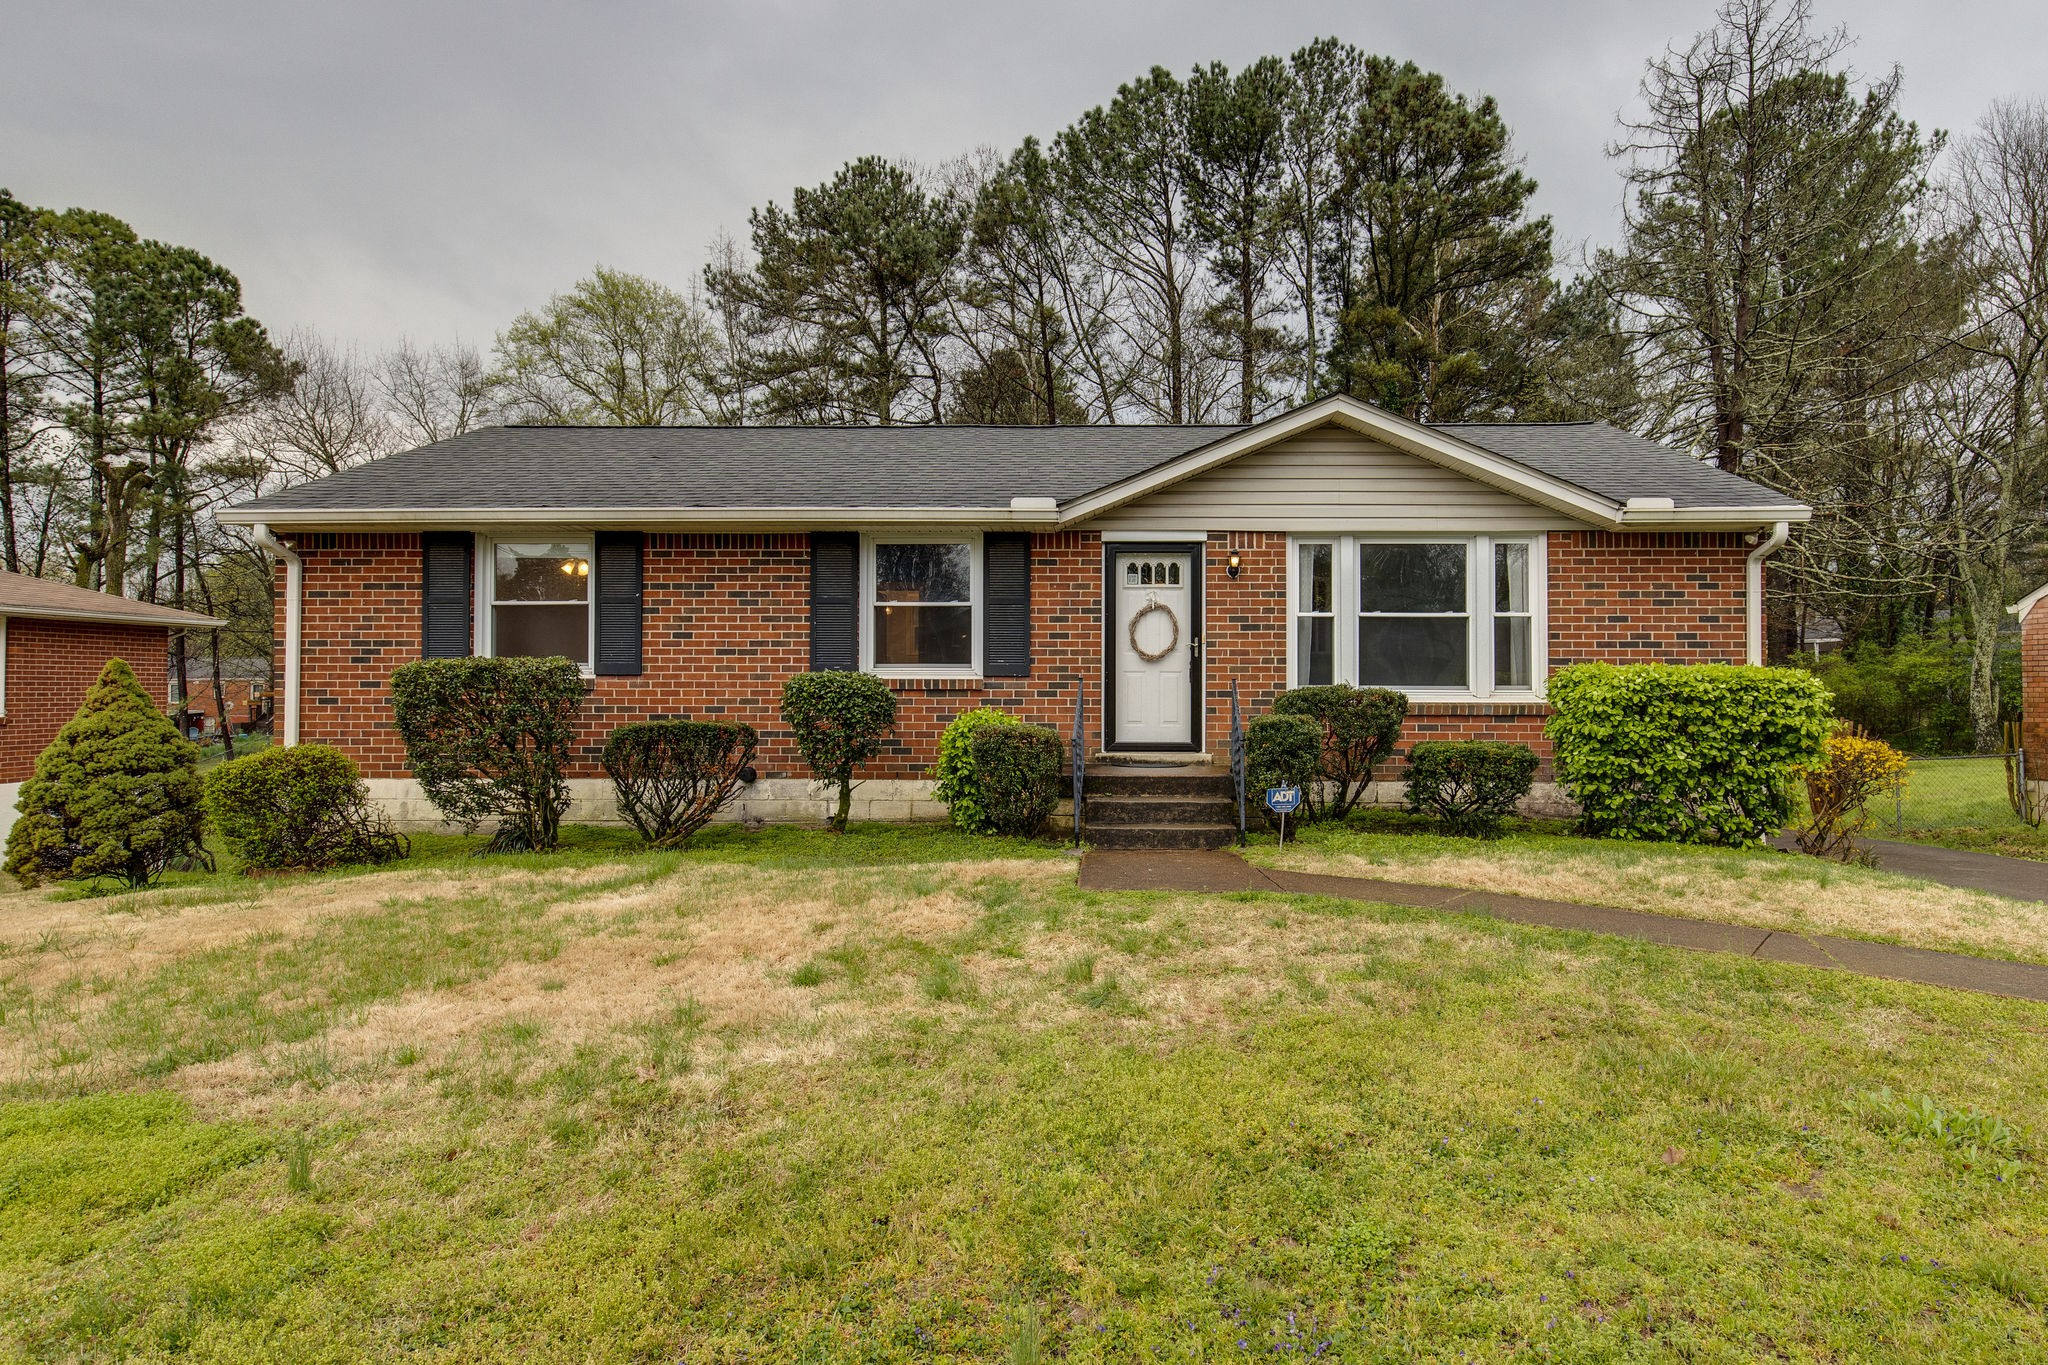 327 Wauford Dr, Nashville, TN 37211 - Nashville, TN real estate listing